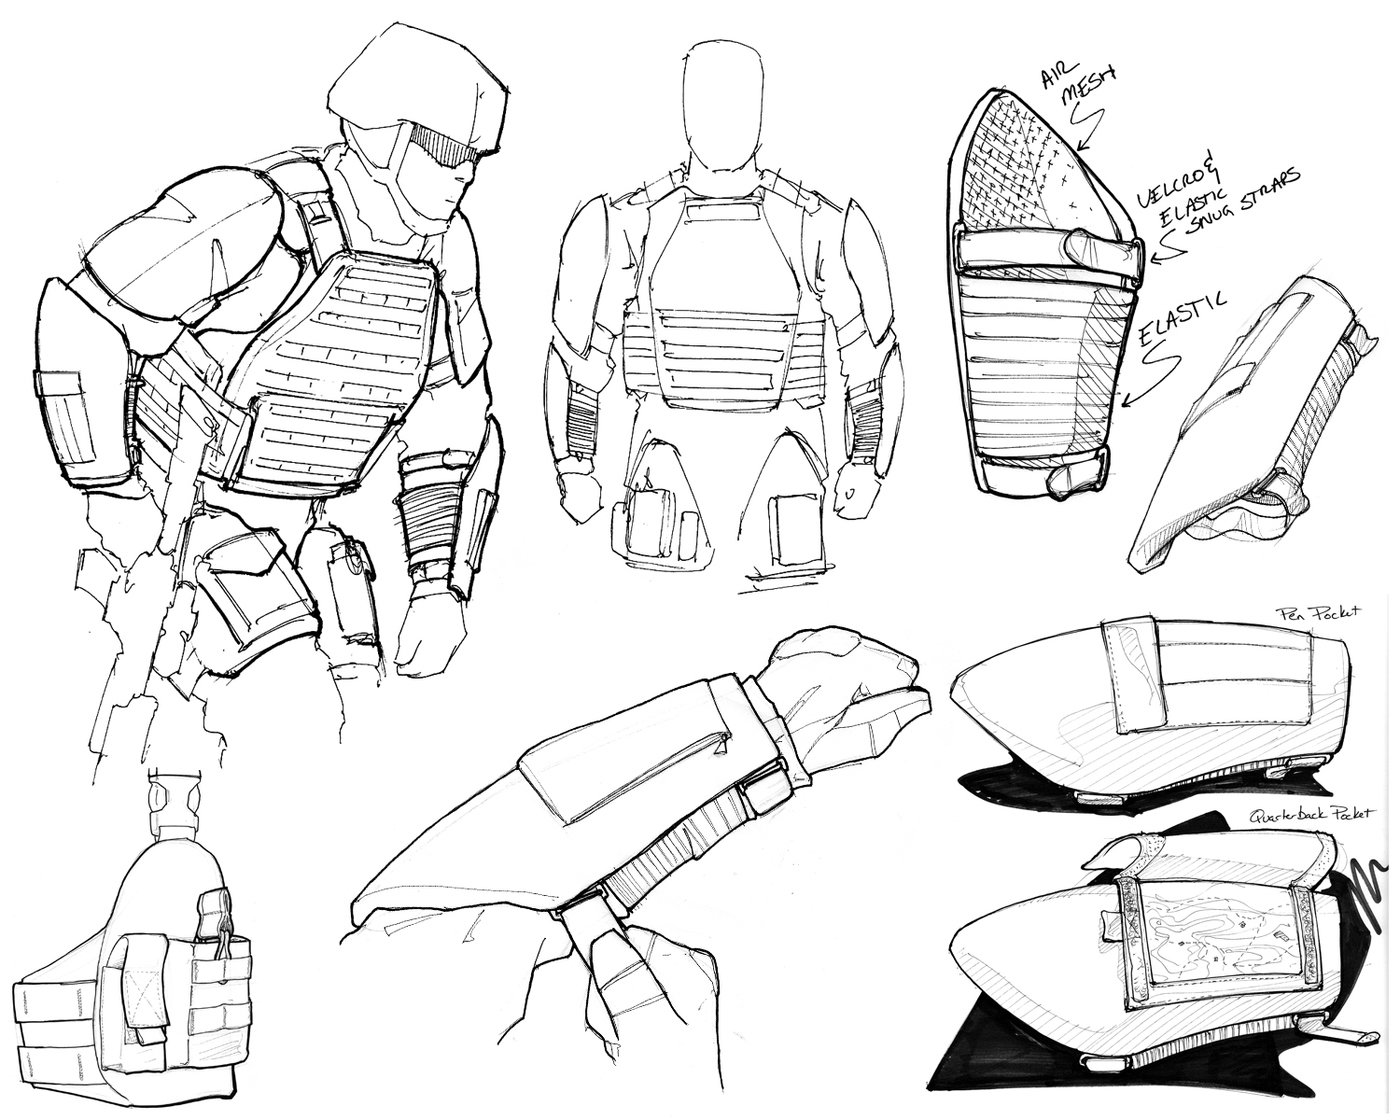 Military Design Work By John Ficker At Coroflot